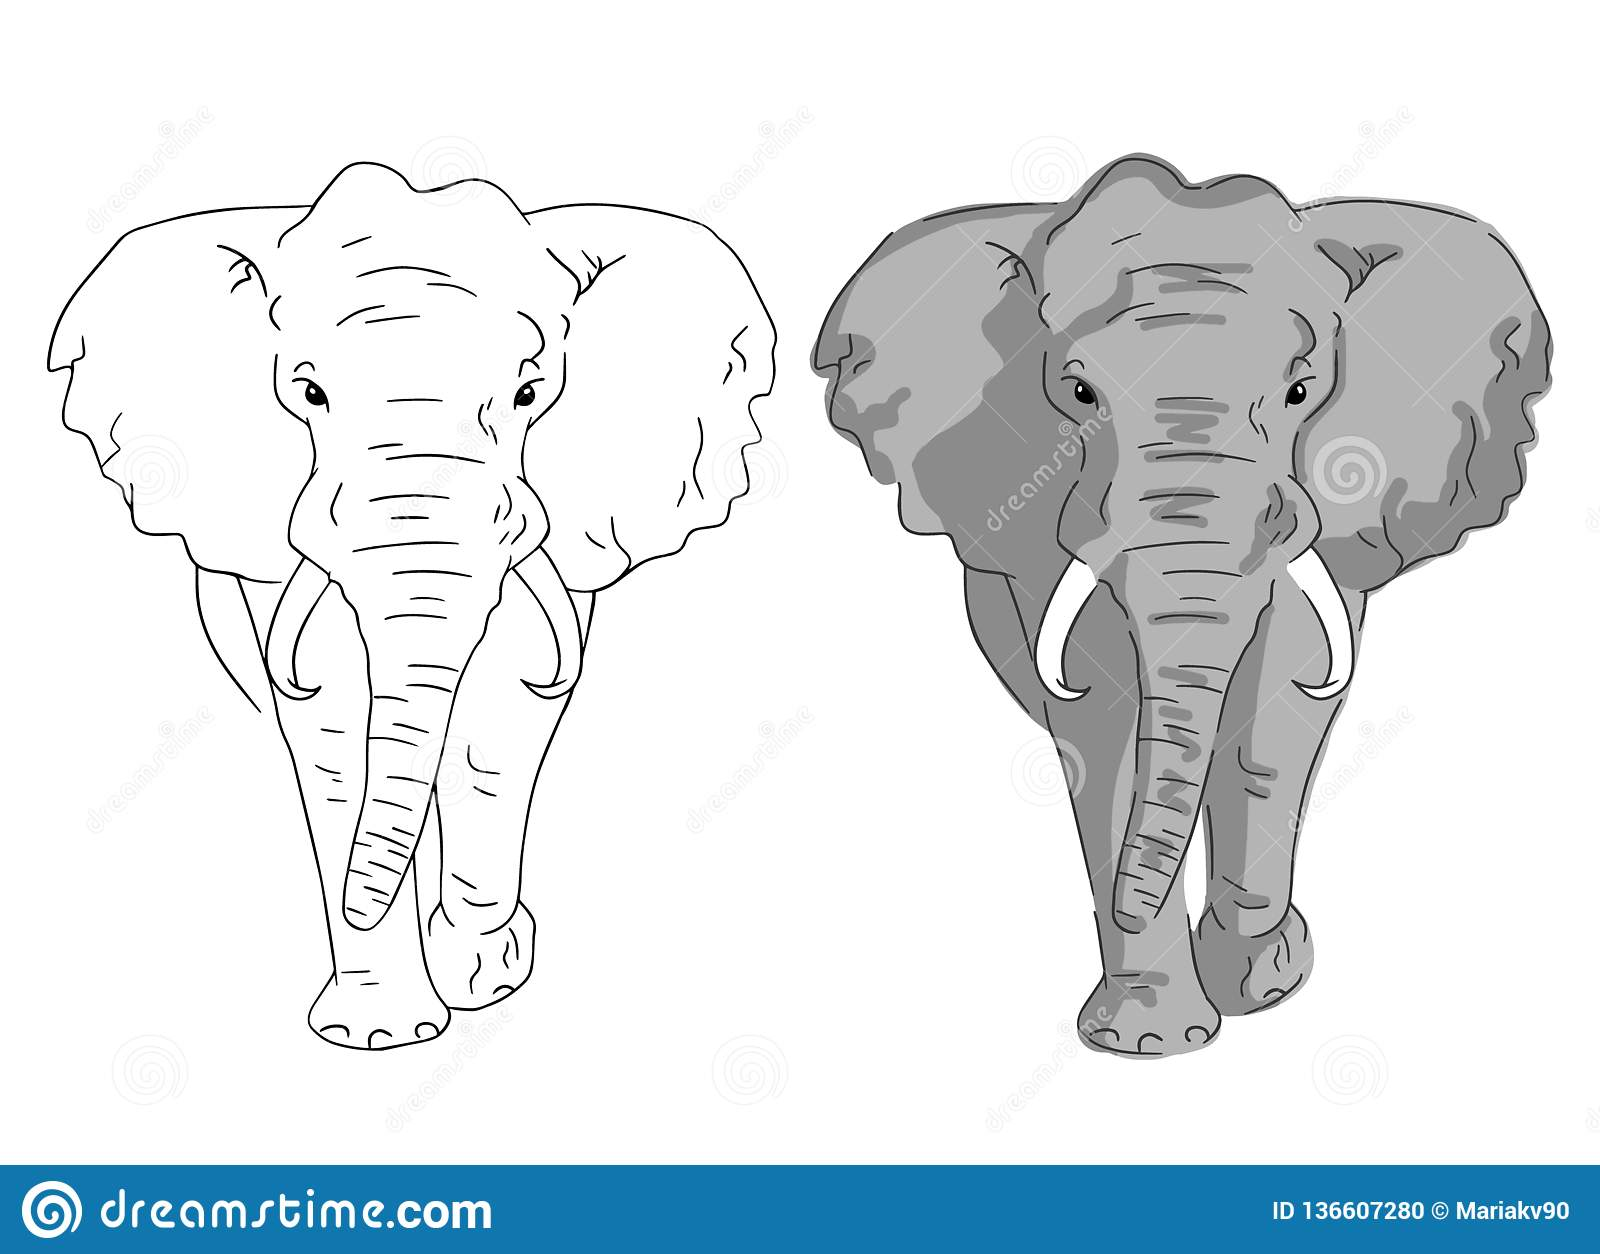 - Elephant Sketches In Color And Lines. Simple Elephants On White